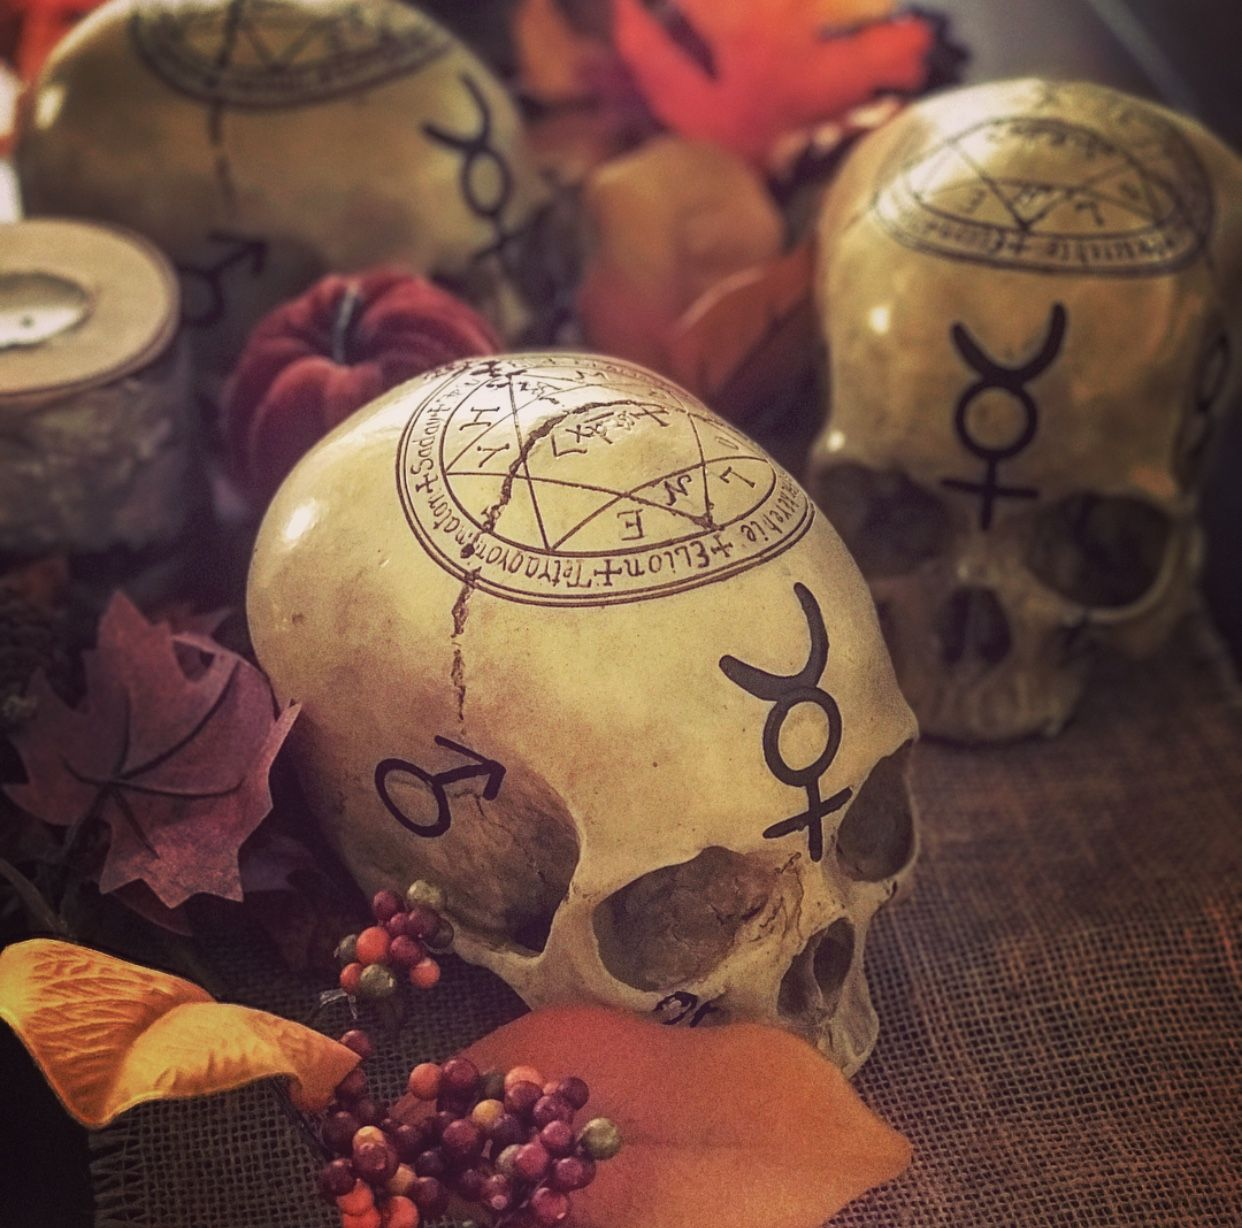 We found these beautiful Mystic Skulls and could not resist but to offer them in our store. Covered in Alchemical markings and Mystic symbols.  #moonmarket #witch #alchemy #witchcraft #witchy #witchery #witchesofinstagram #skull #replica #wicca #wiccan #pagan #neopagan #occult #magick #metaphysical #newage #spells #spellwork #mystic #altar #liveauthentic #instagood